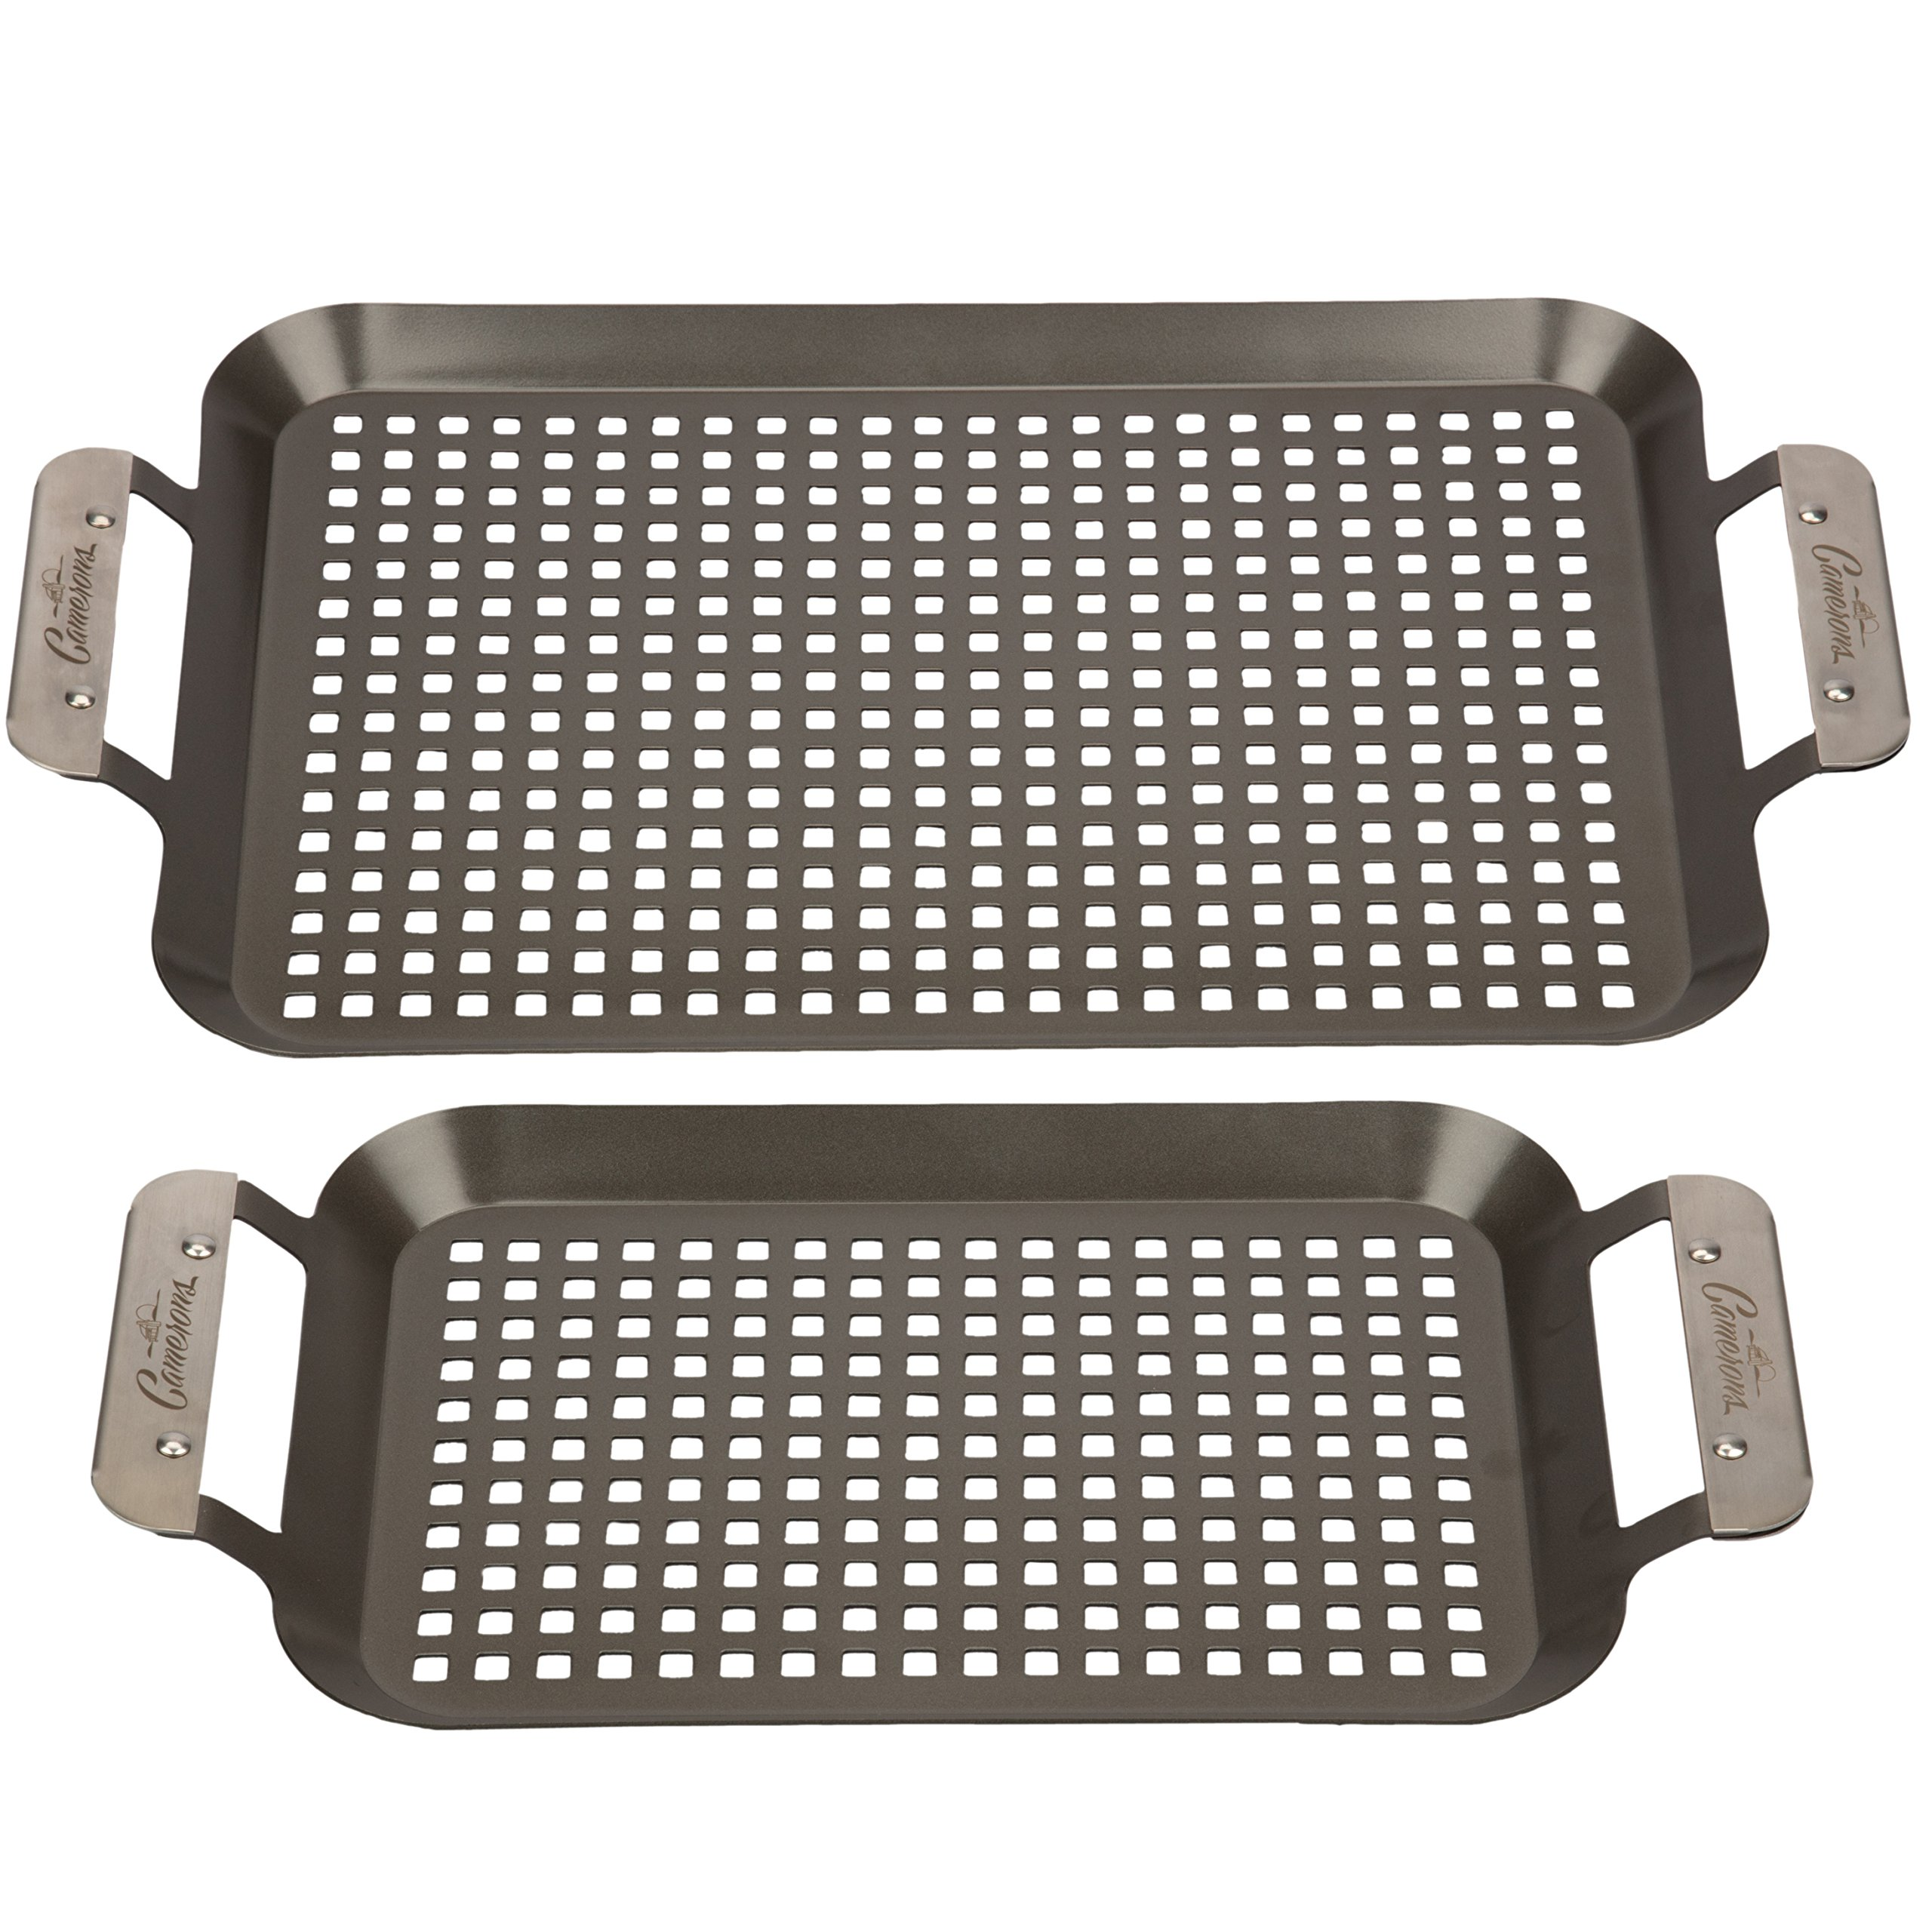 Grill Topper BBQ Grilling Pans (Set of 2) - Non-Stick Barbecue Trays w Stainless Steel Handles for Meat, Vegetables, and Seafood by Camerons Products